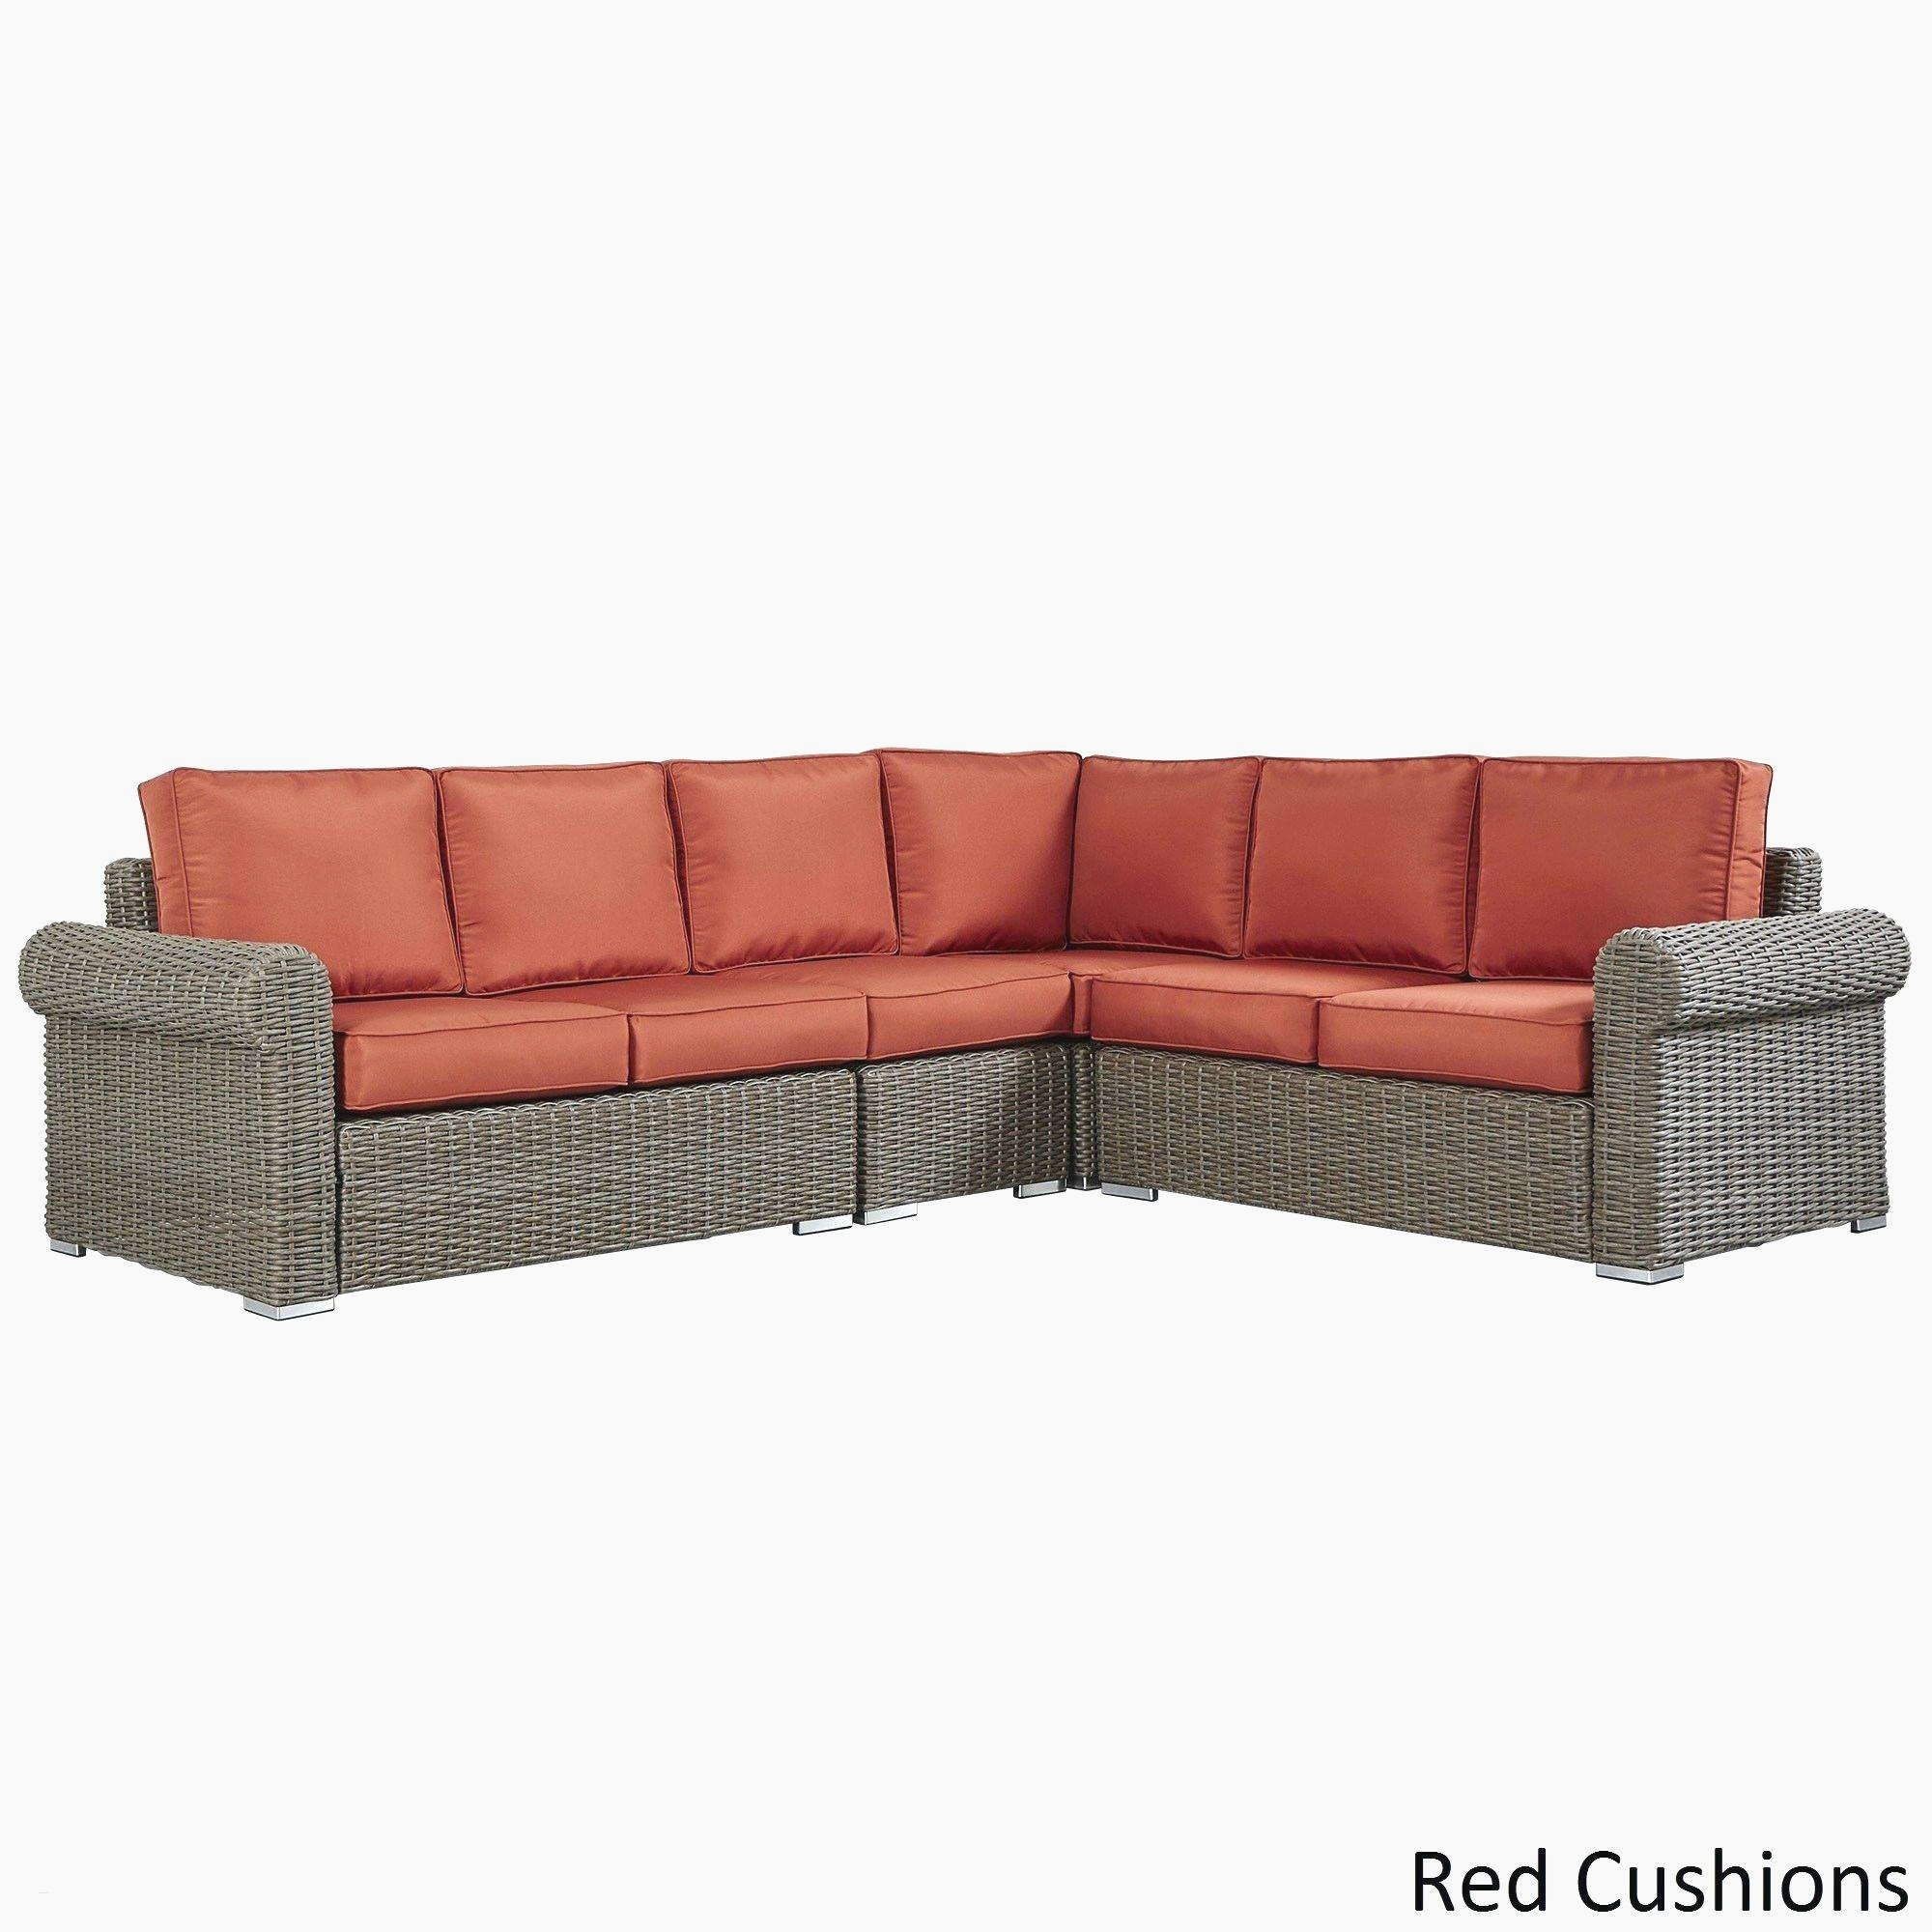 60 Awesome Sectional Sleeper Sofa With Chaise Collection 6Y7K – Home In Arrowmask 2 Piece Sectionals With Sleeper & Left Facing Chaise (Image 1 of 25)